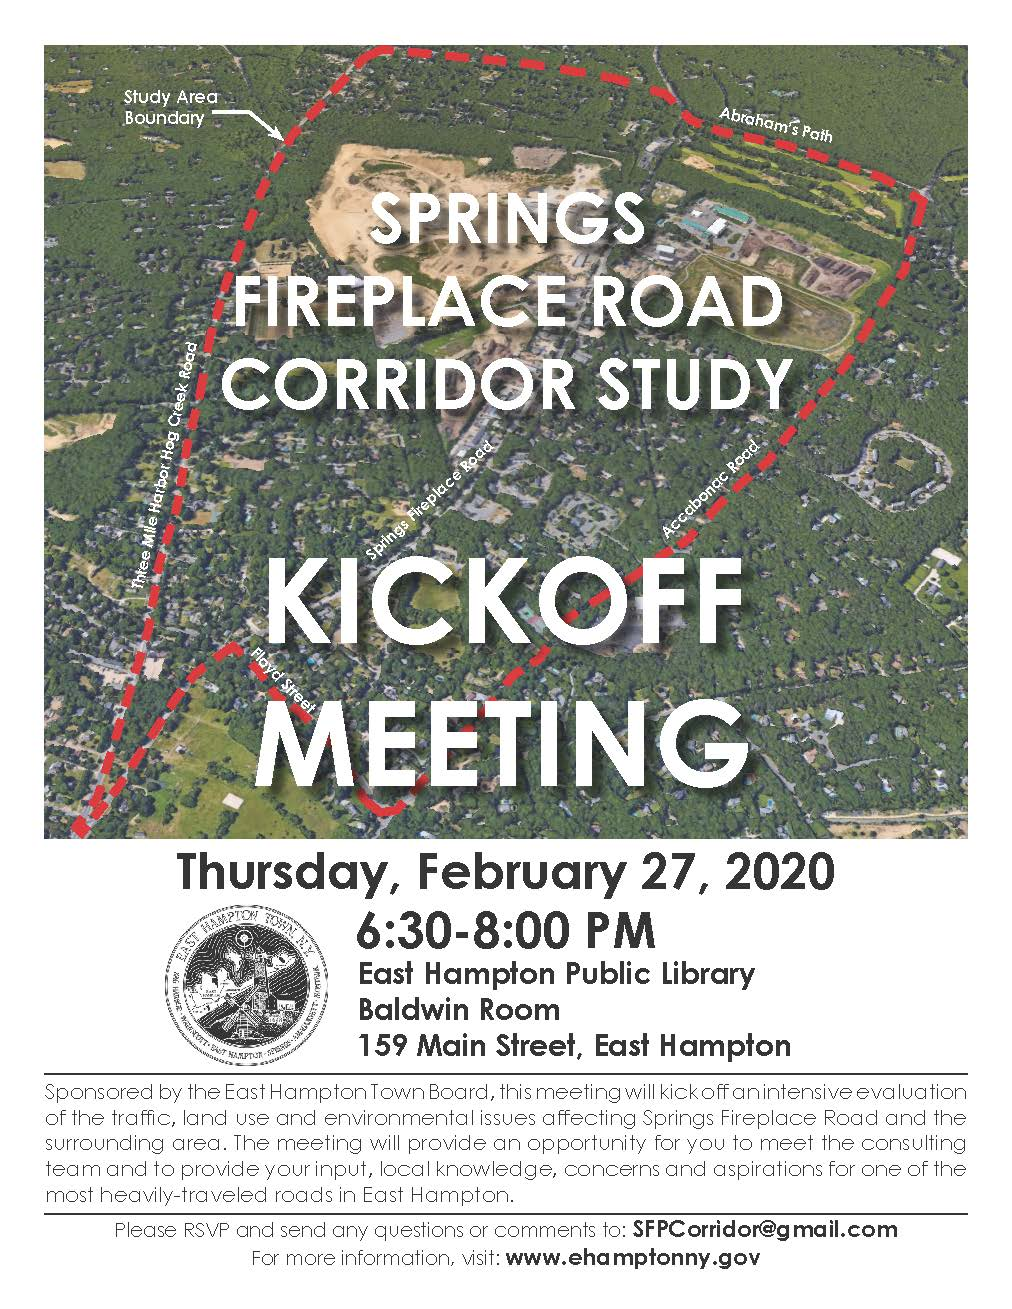 Kickoff Meeting Flyer